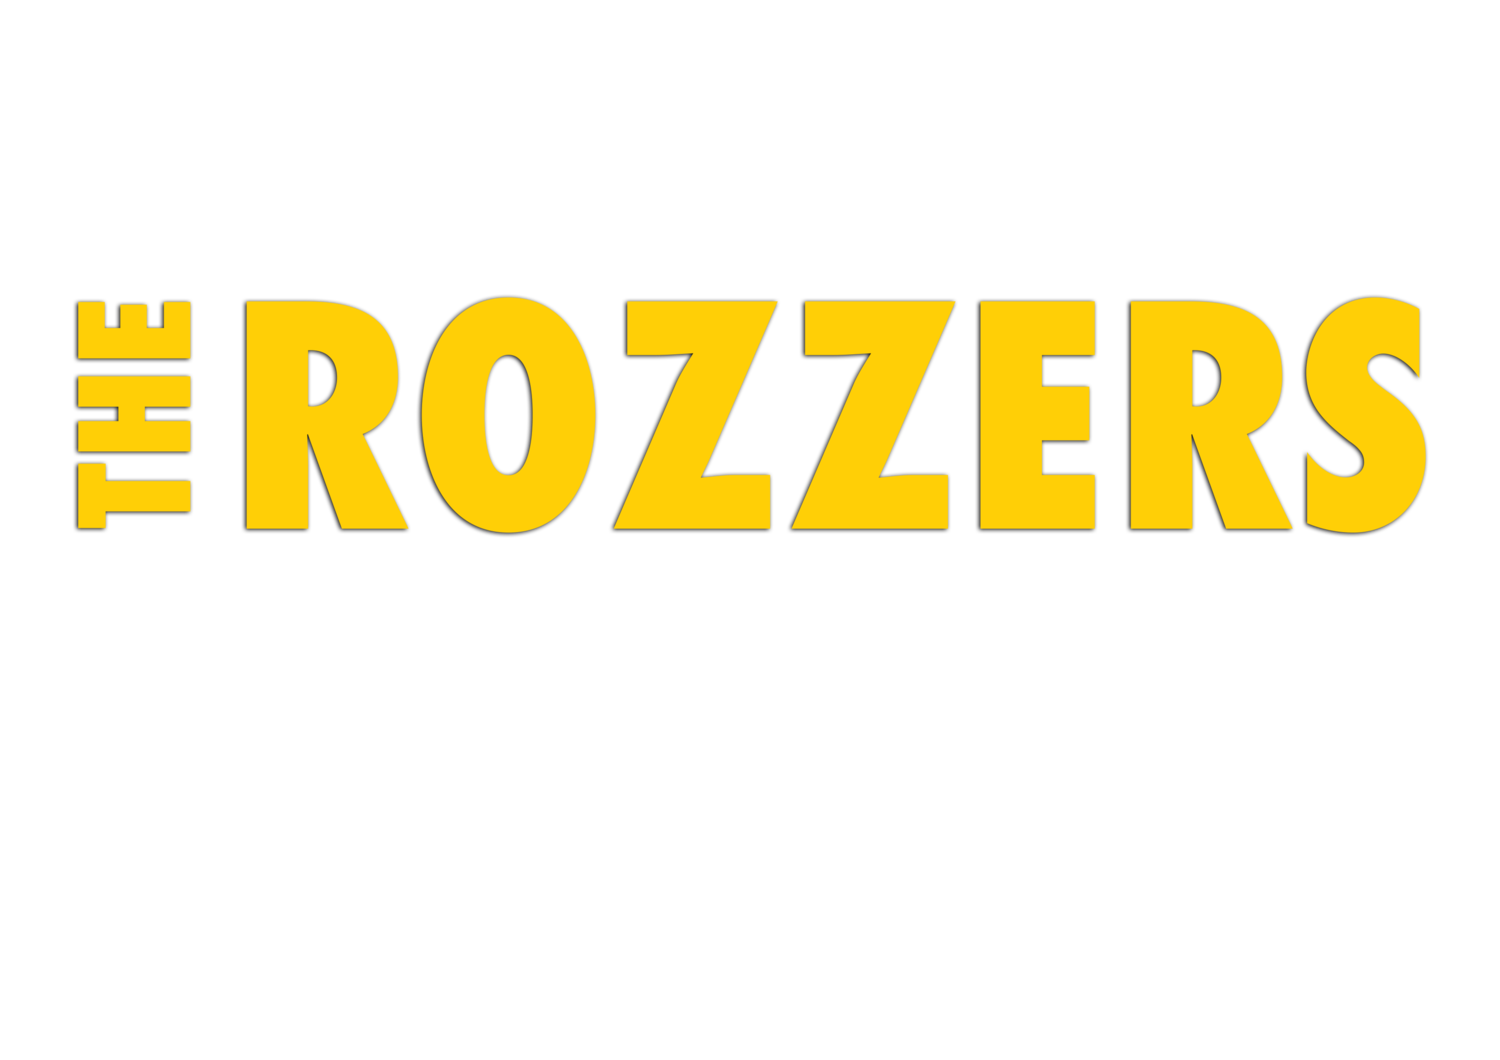 The Rozzers